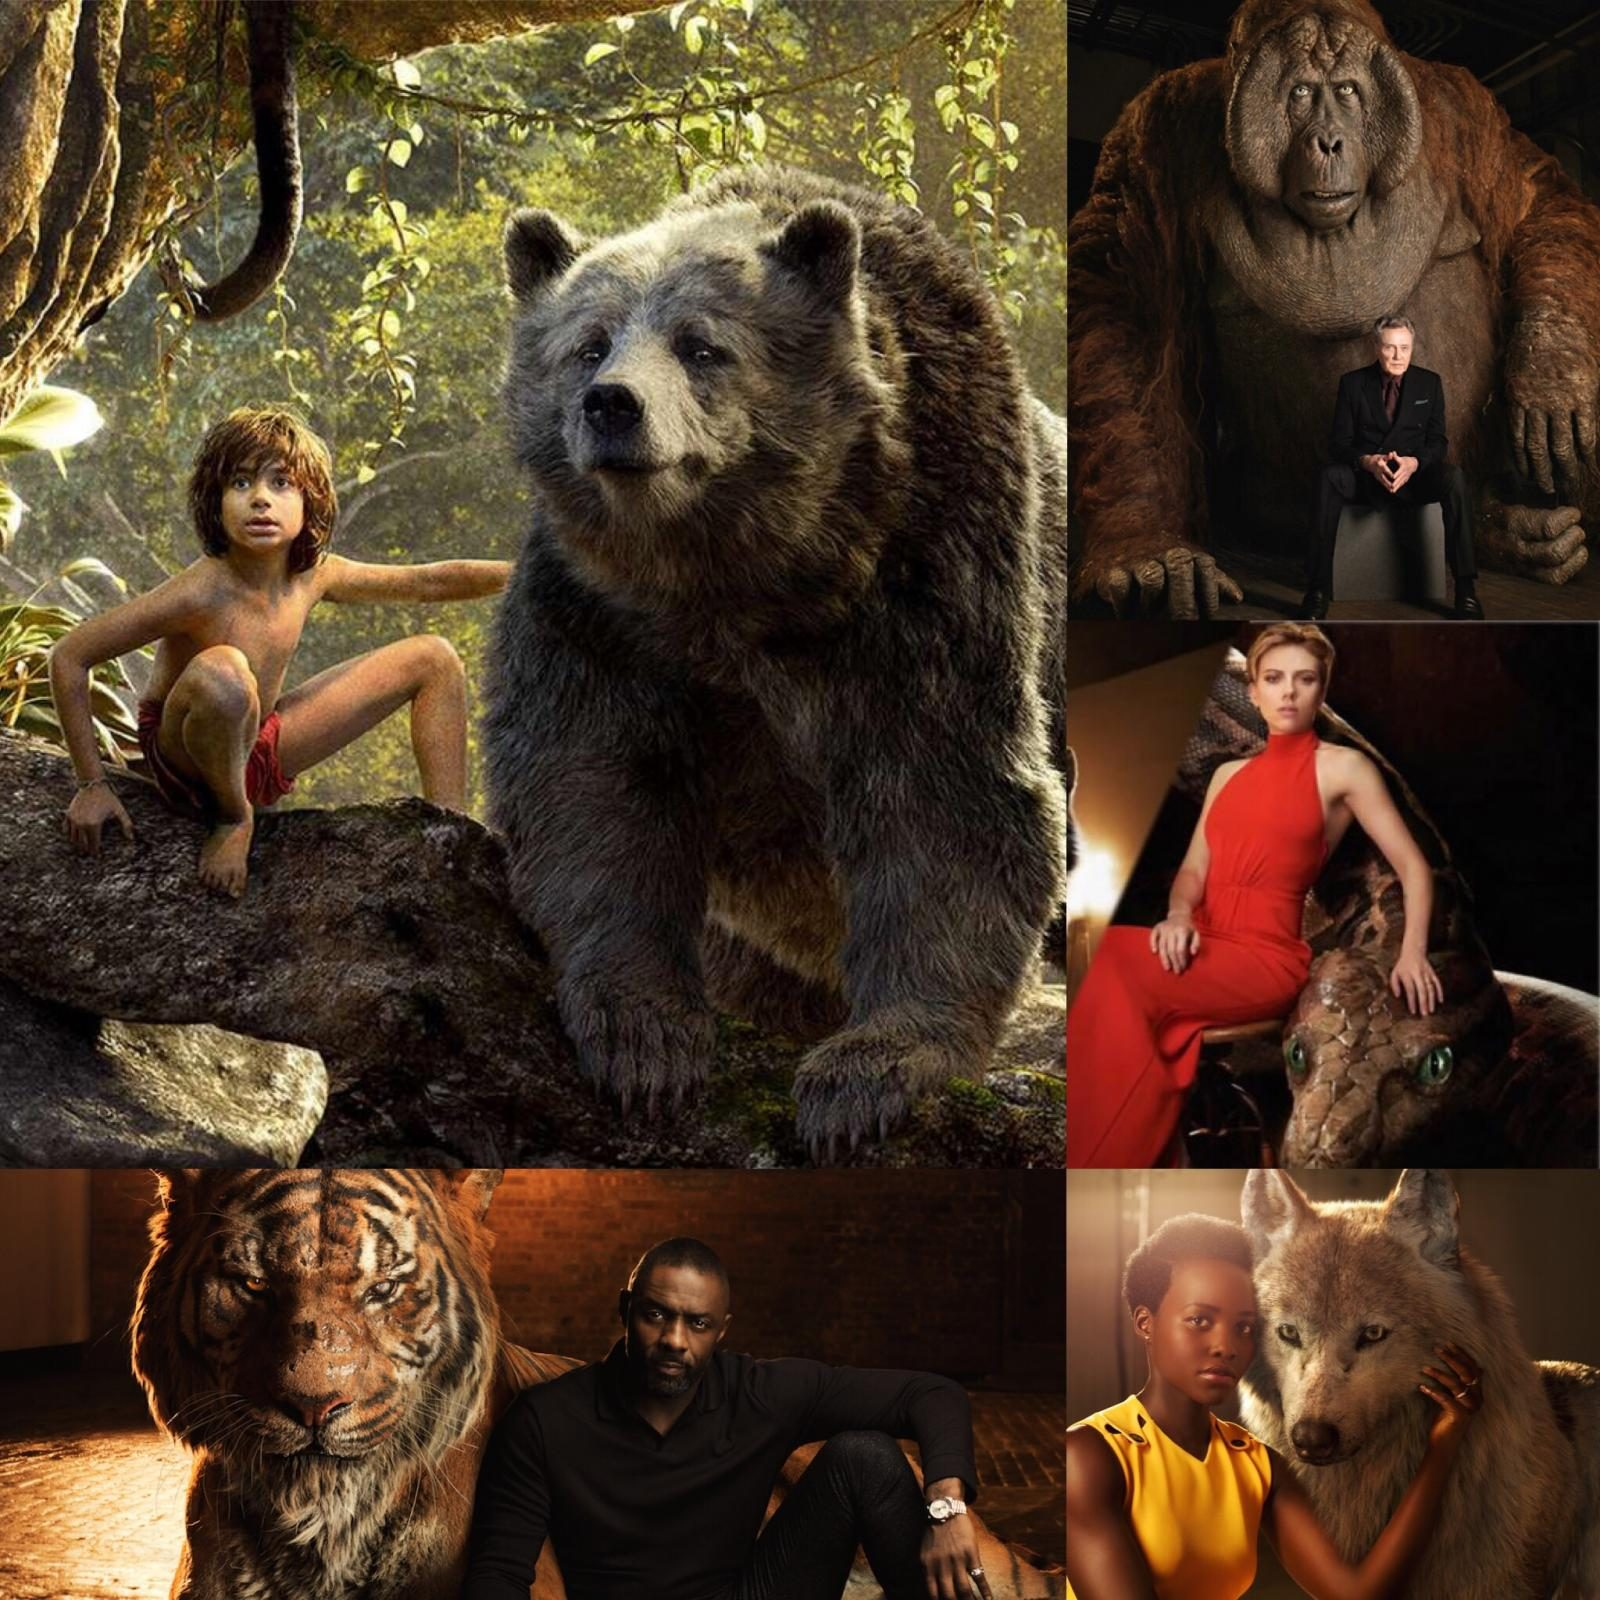 The Jungle Book (2016) cast and characters